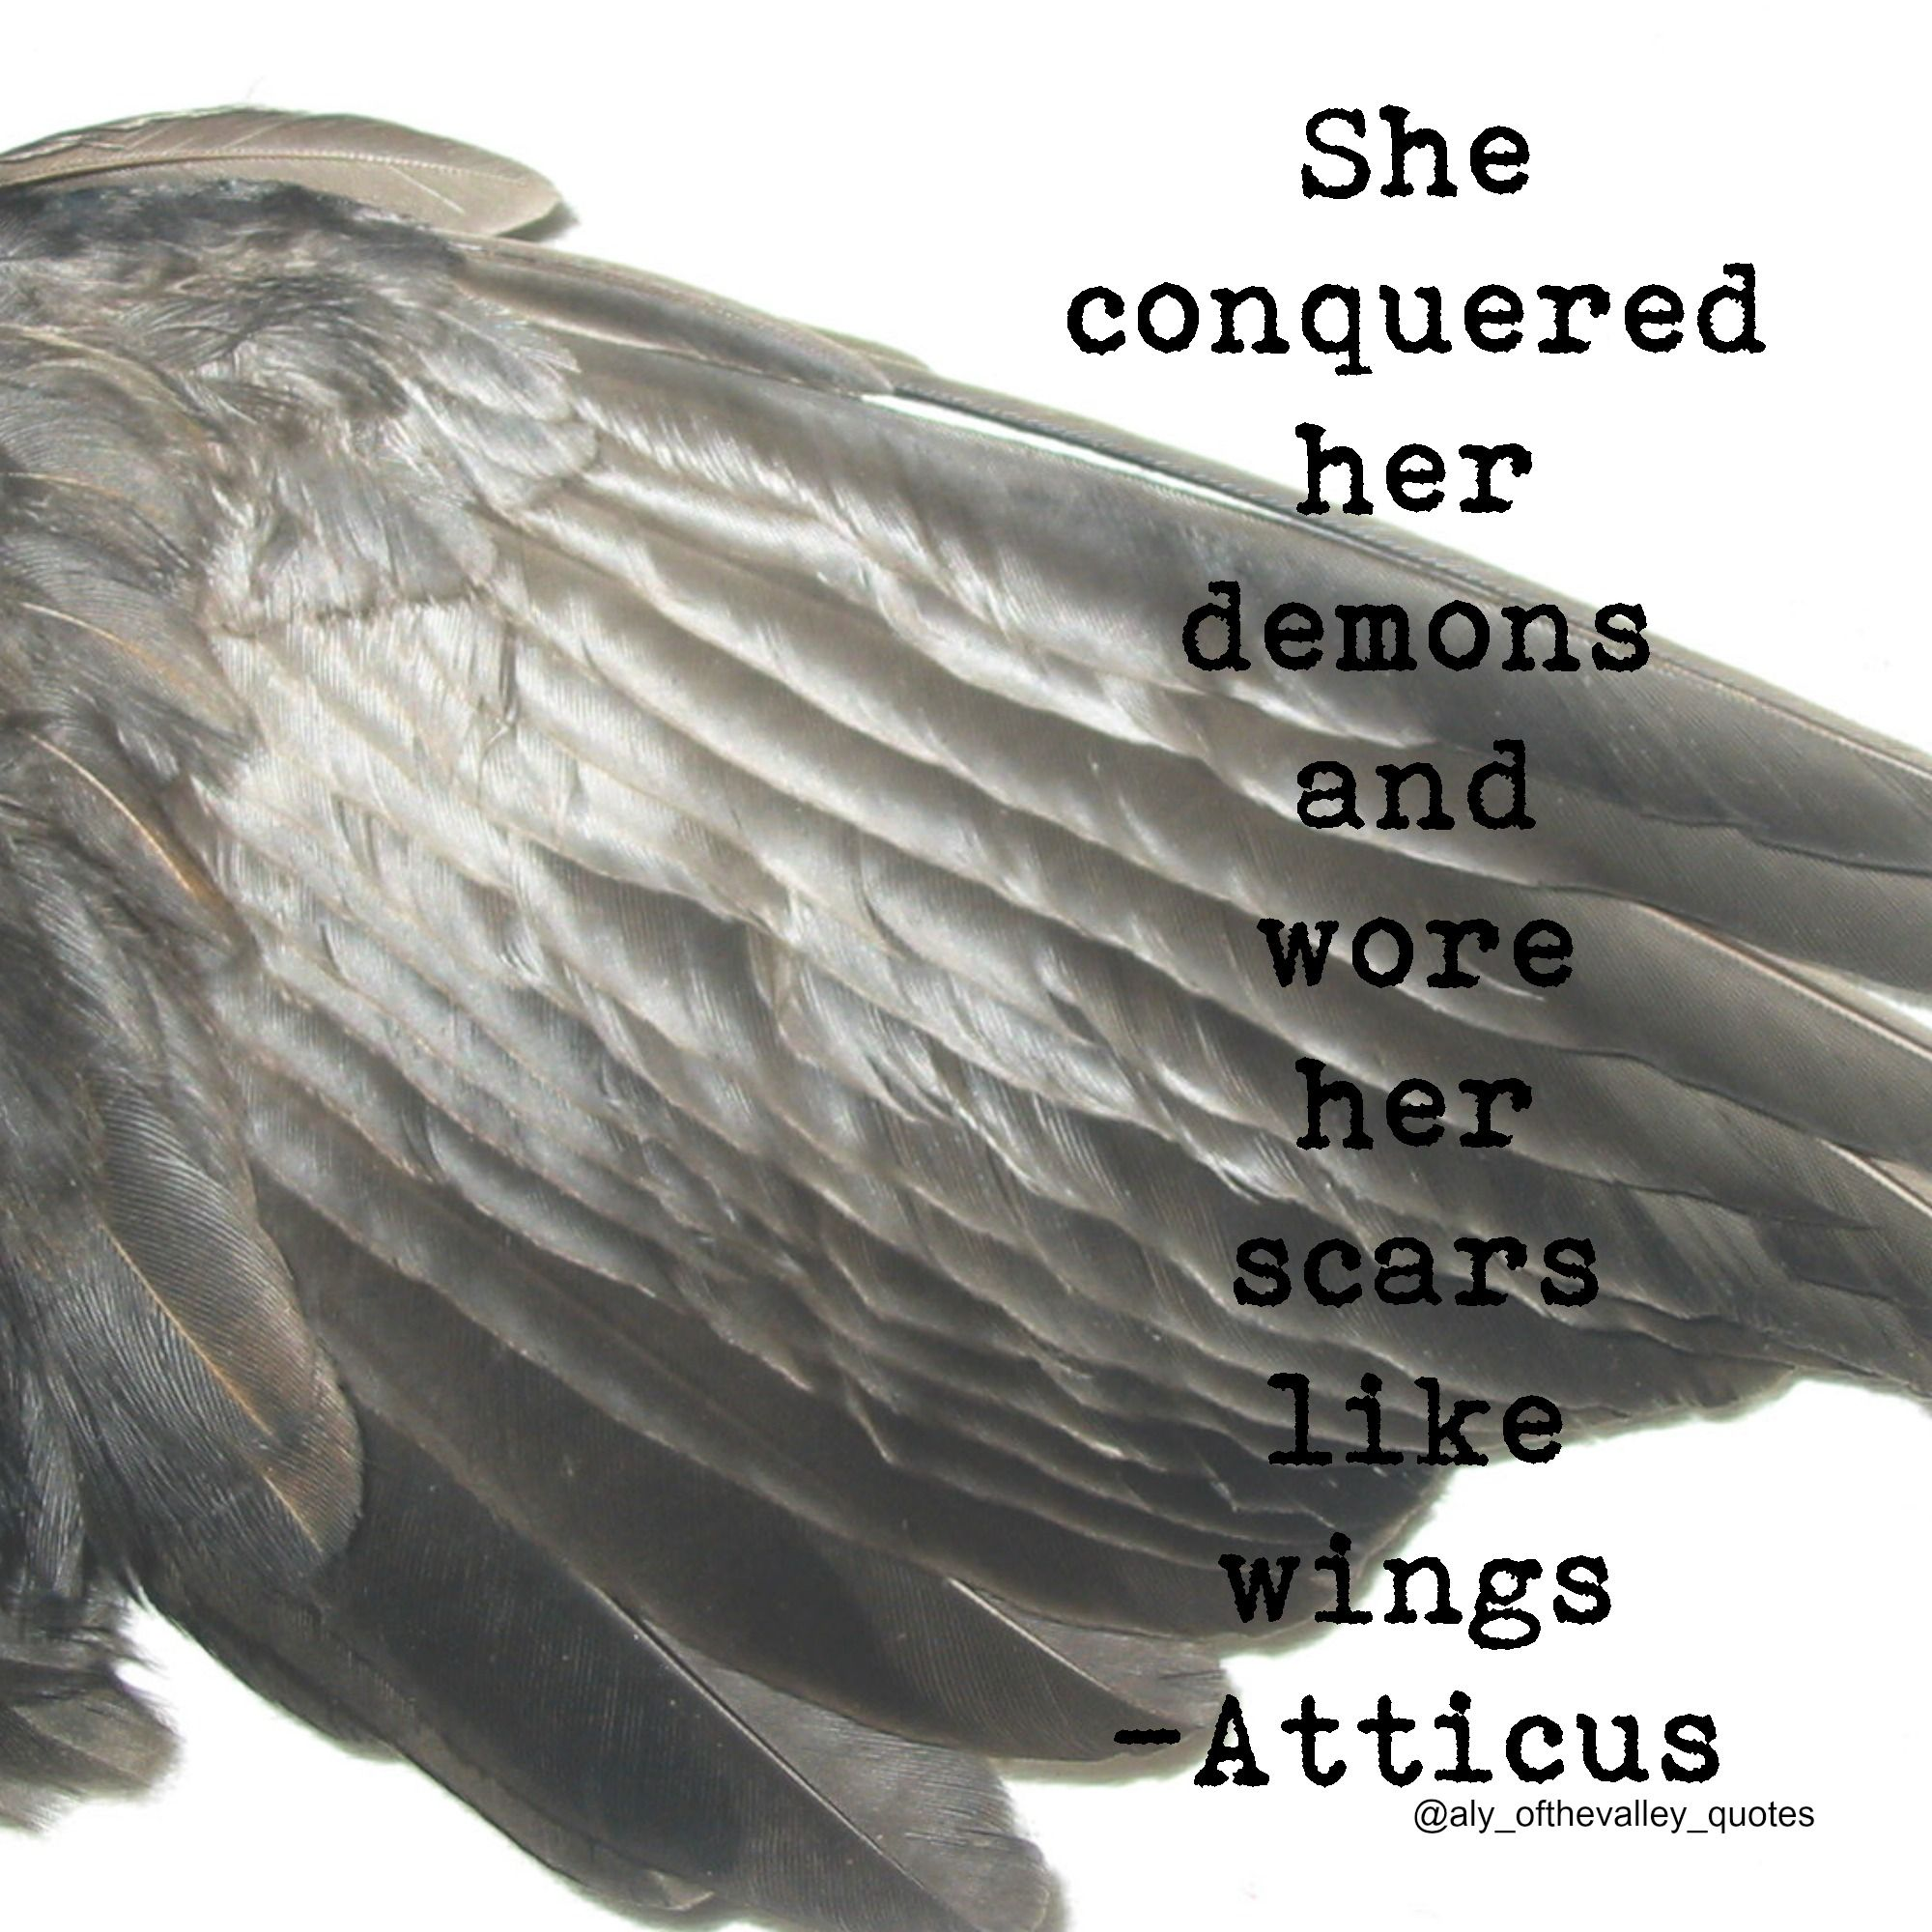 #quotes #conquered #demons #scars #wings #atticus